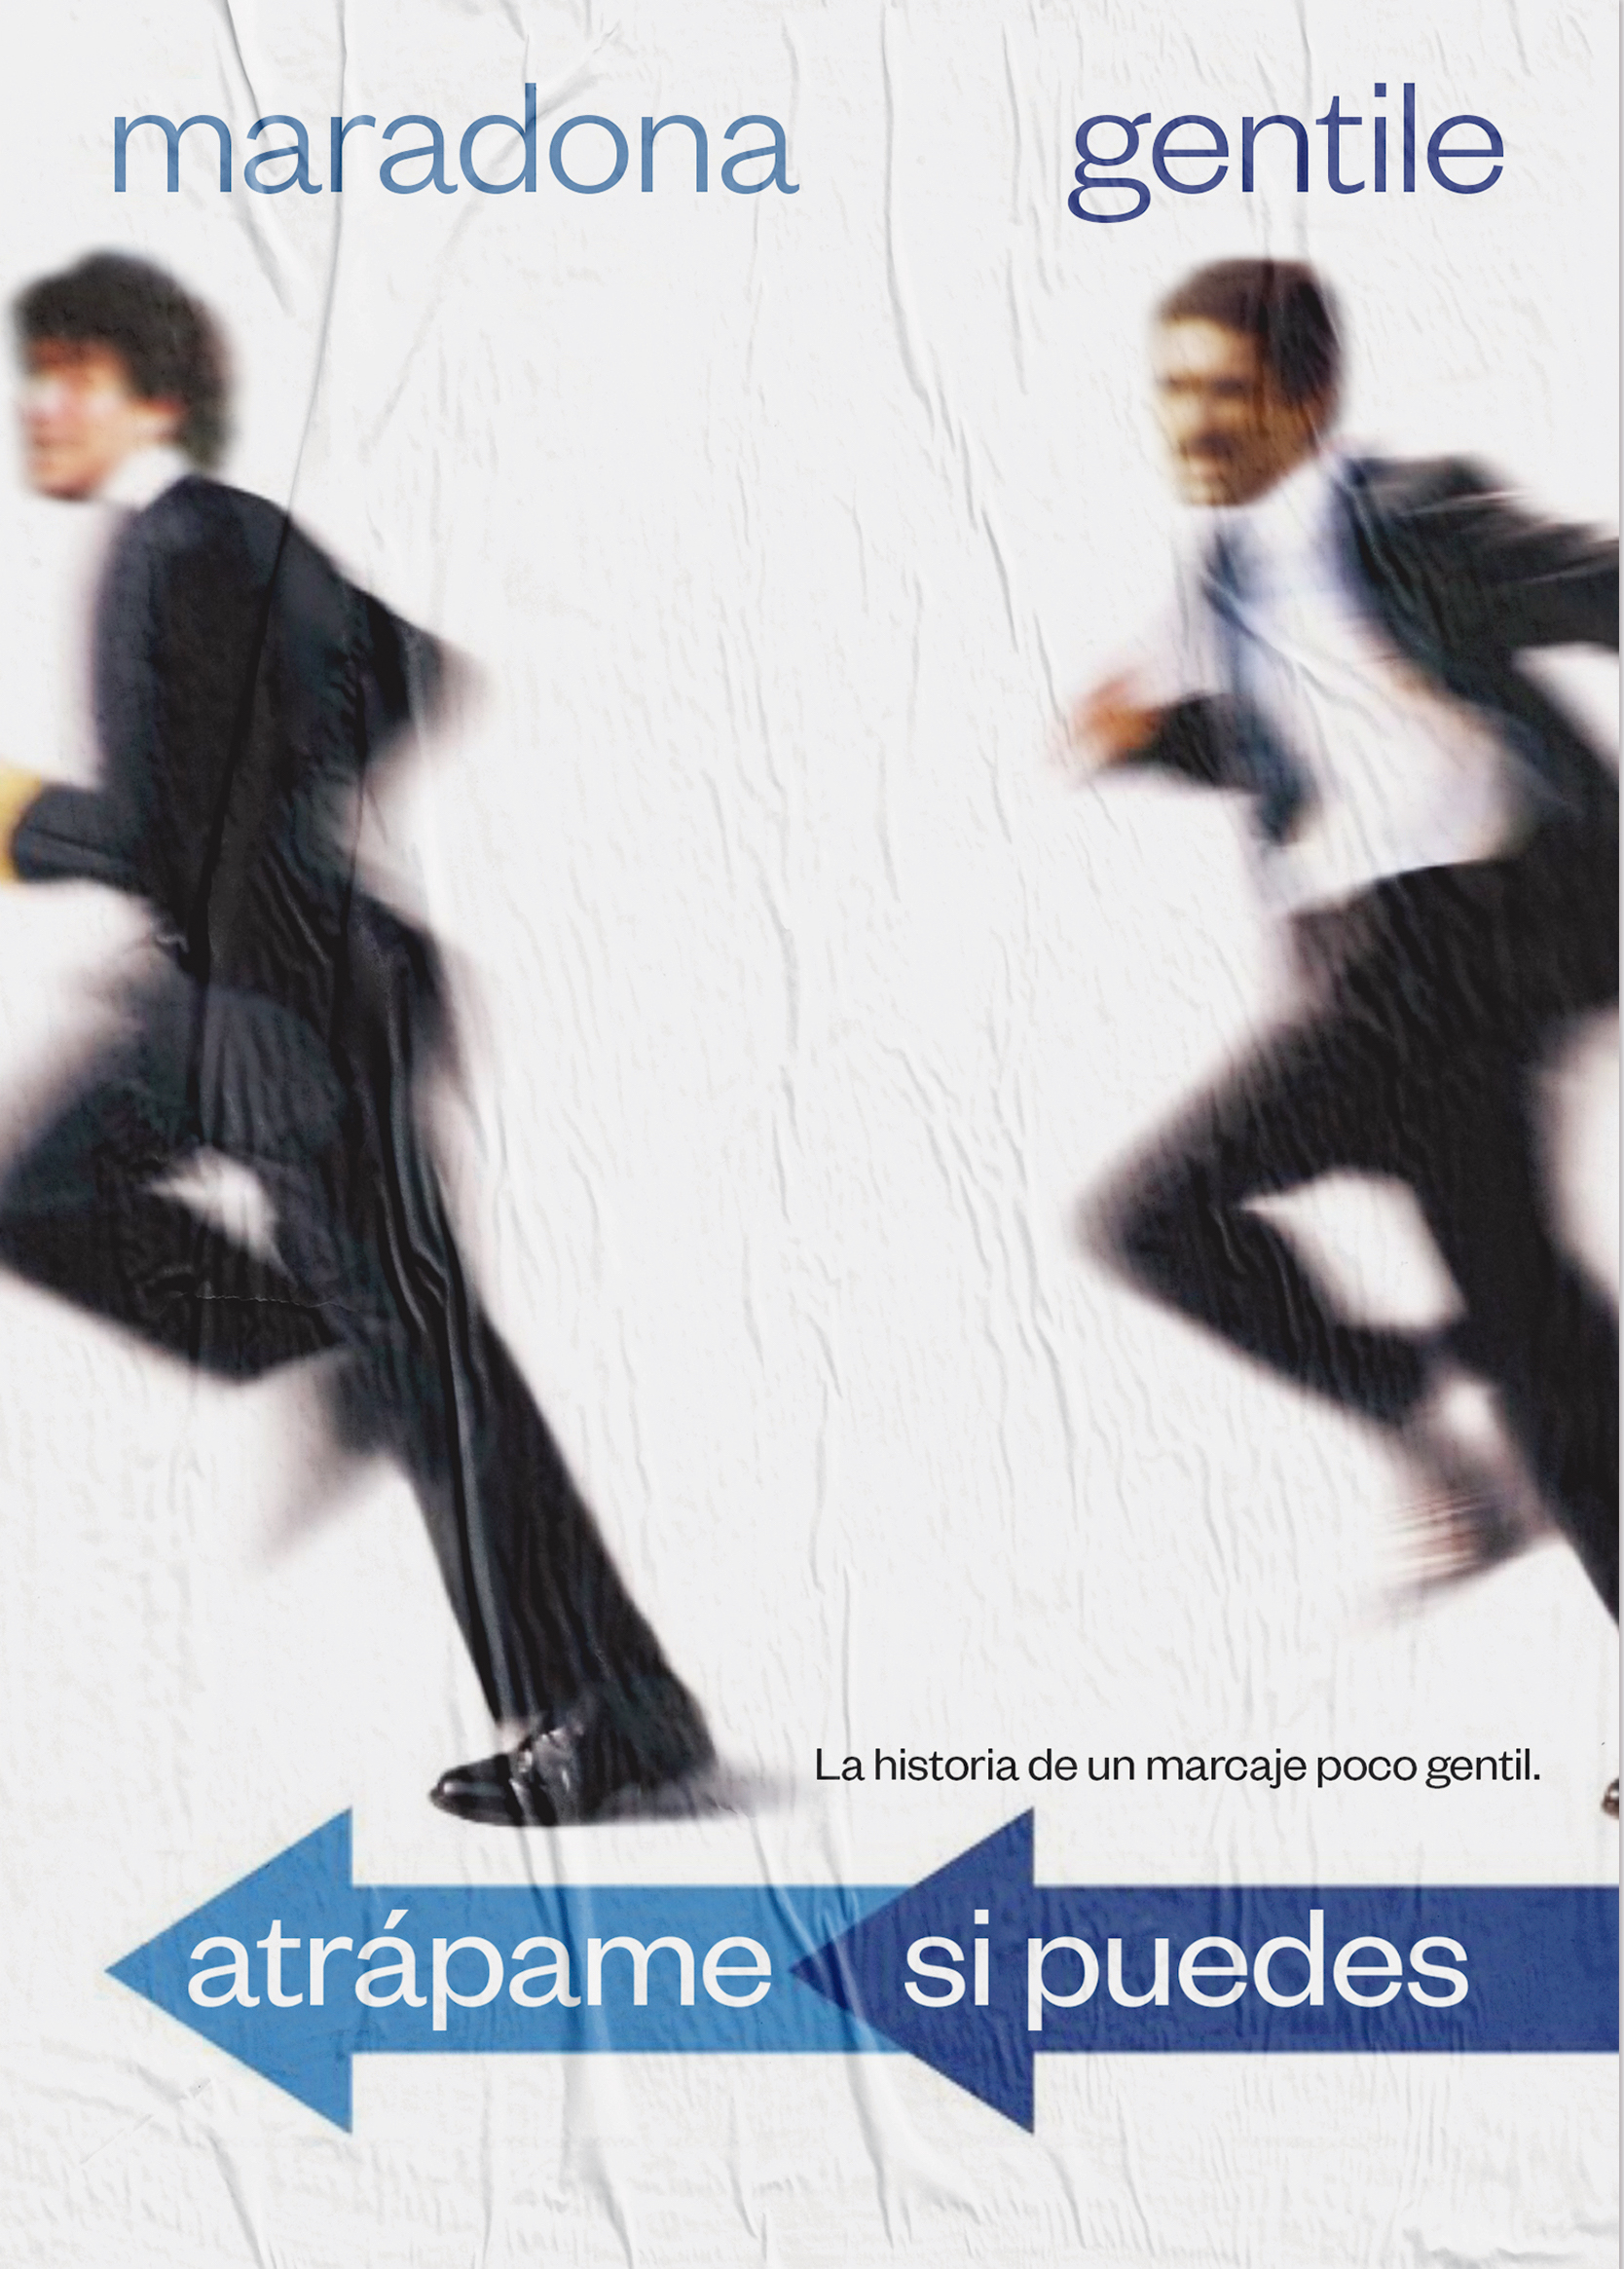 'Catch me if you can'. Starring Diego Armando Maradona and Claudio Gentile. A reference to Gentile's man-marking on Maradona in the 1982 World Cup.